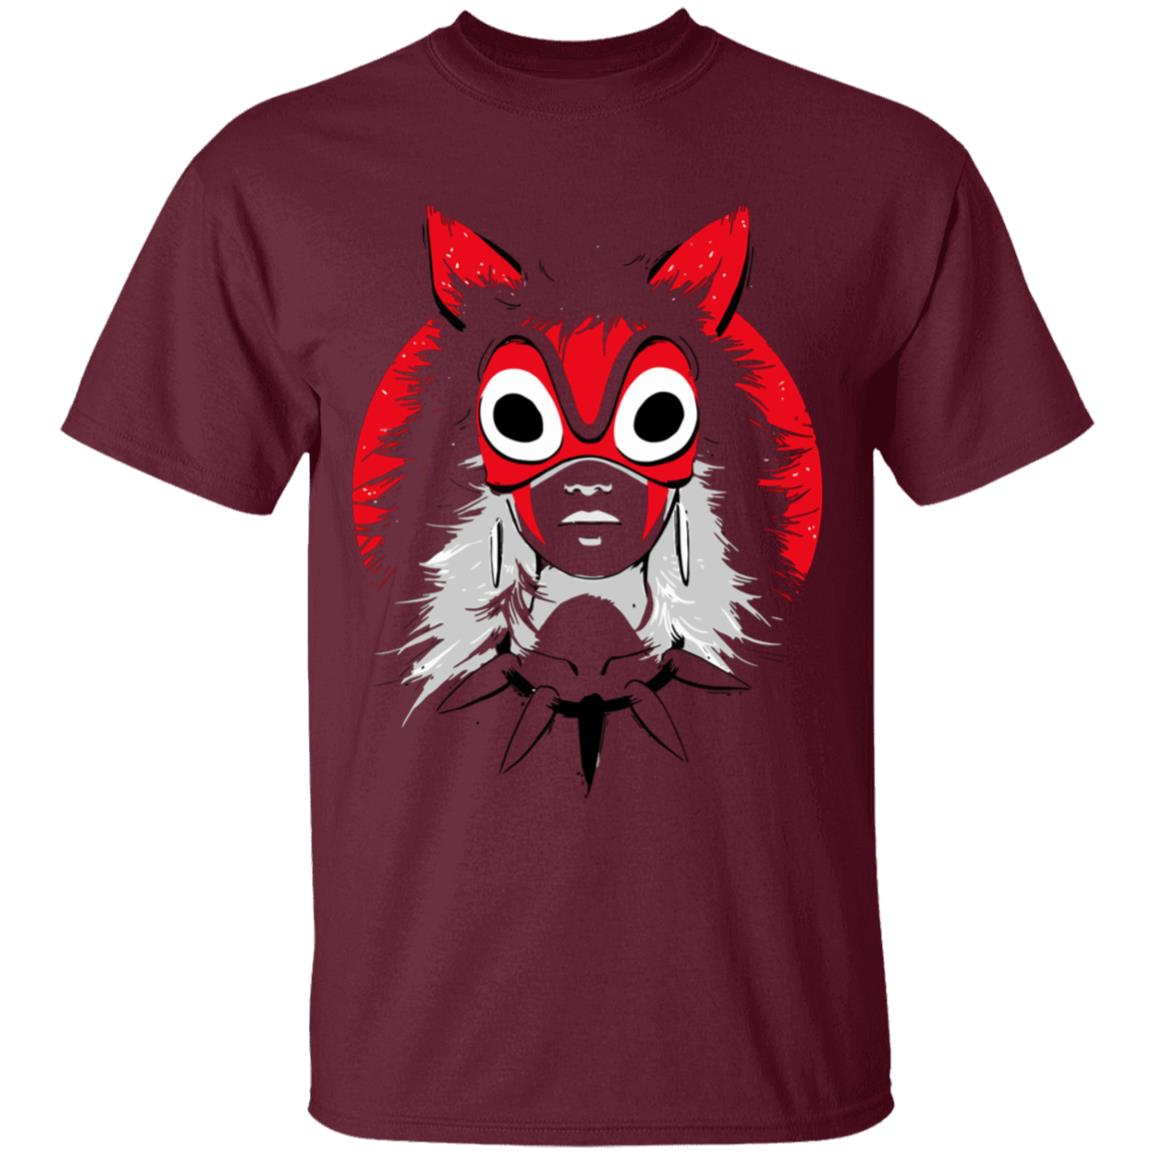 Princess Mononoke and the Broken Mask T Shirt